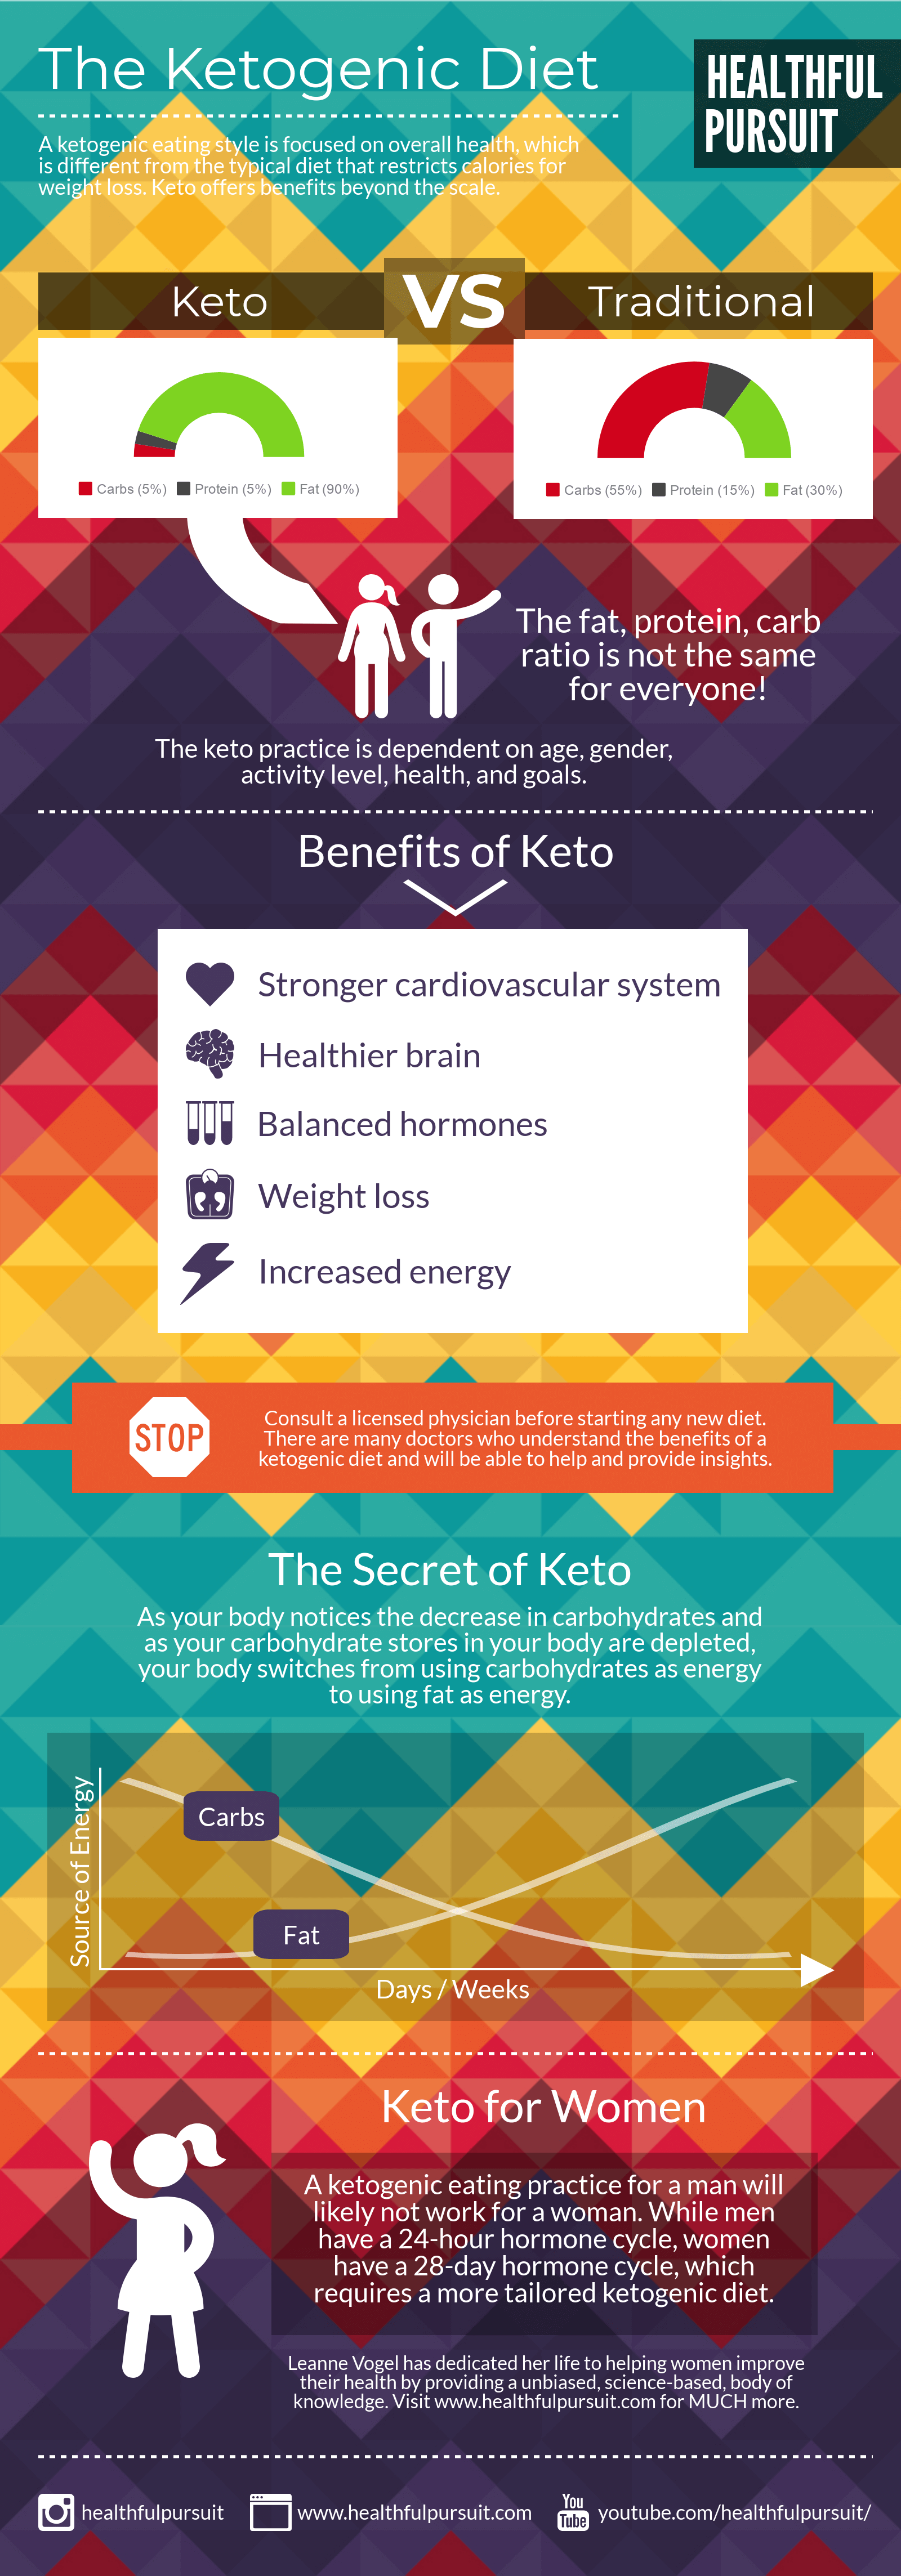 The Ketogenic Diet infographic